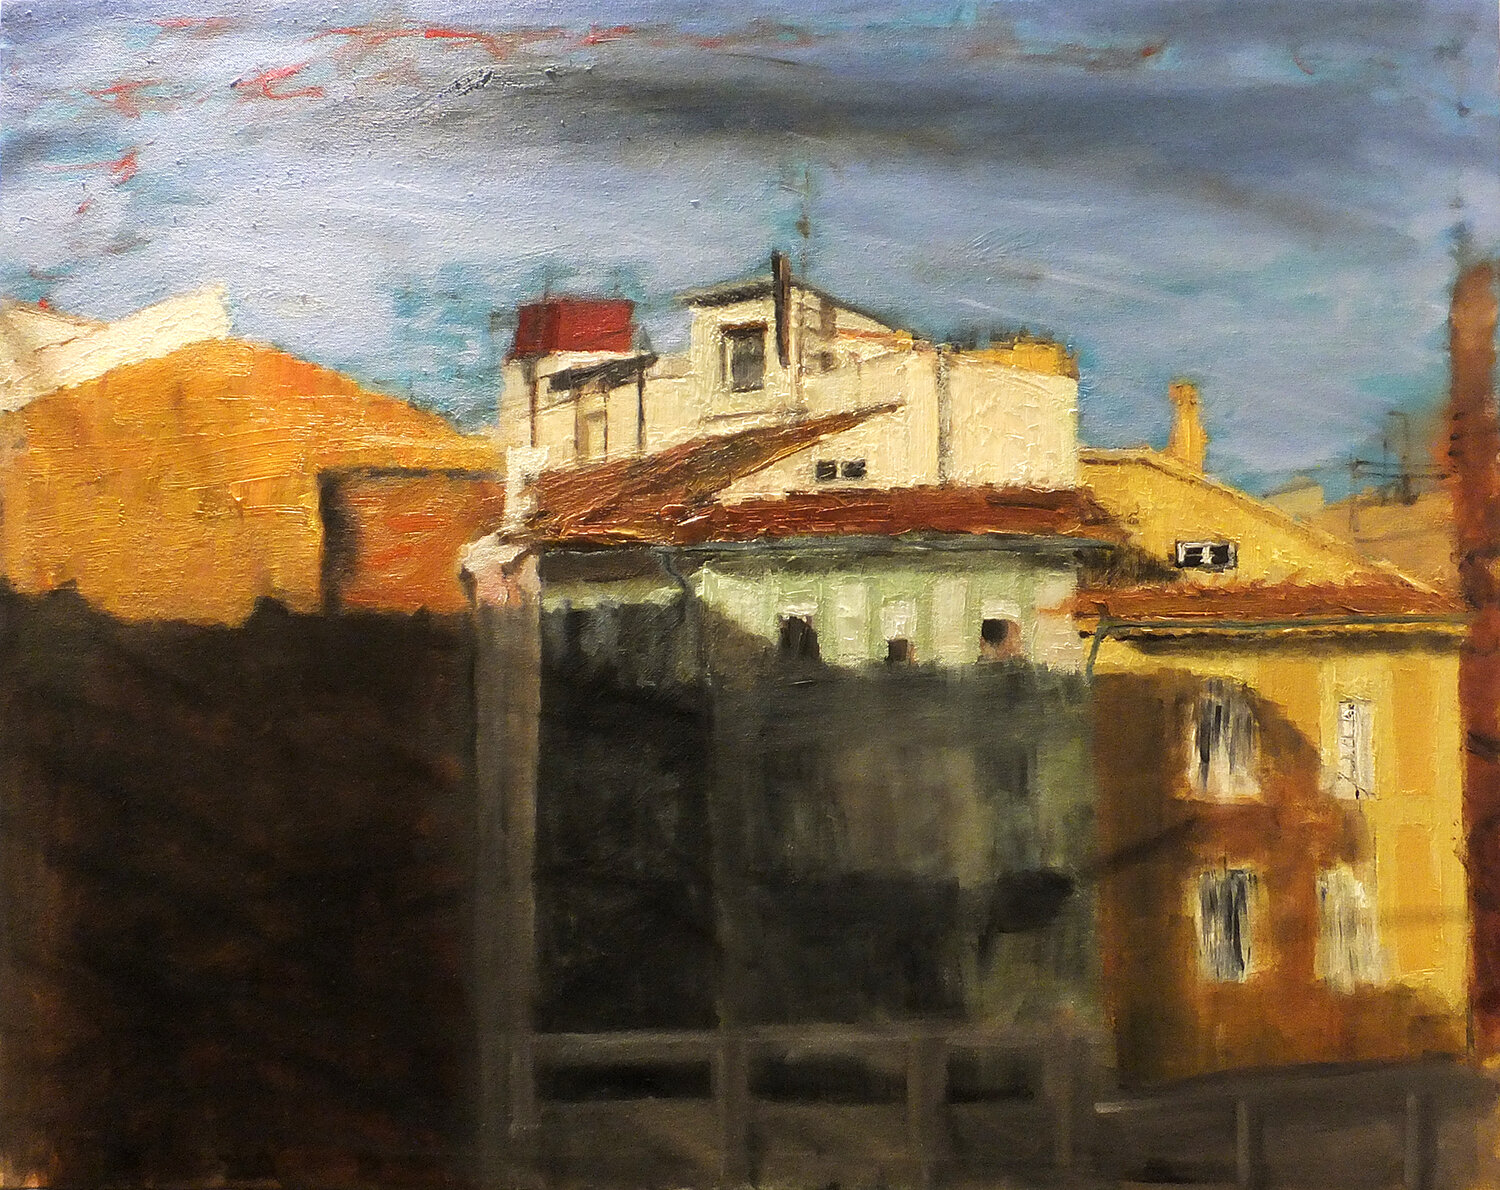 The Valencia series: The Old Town III, oil on canvas, 92x73 cm